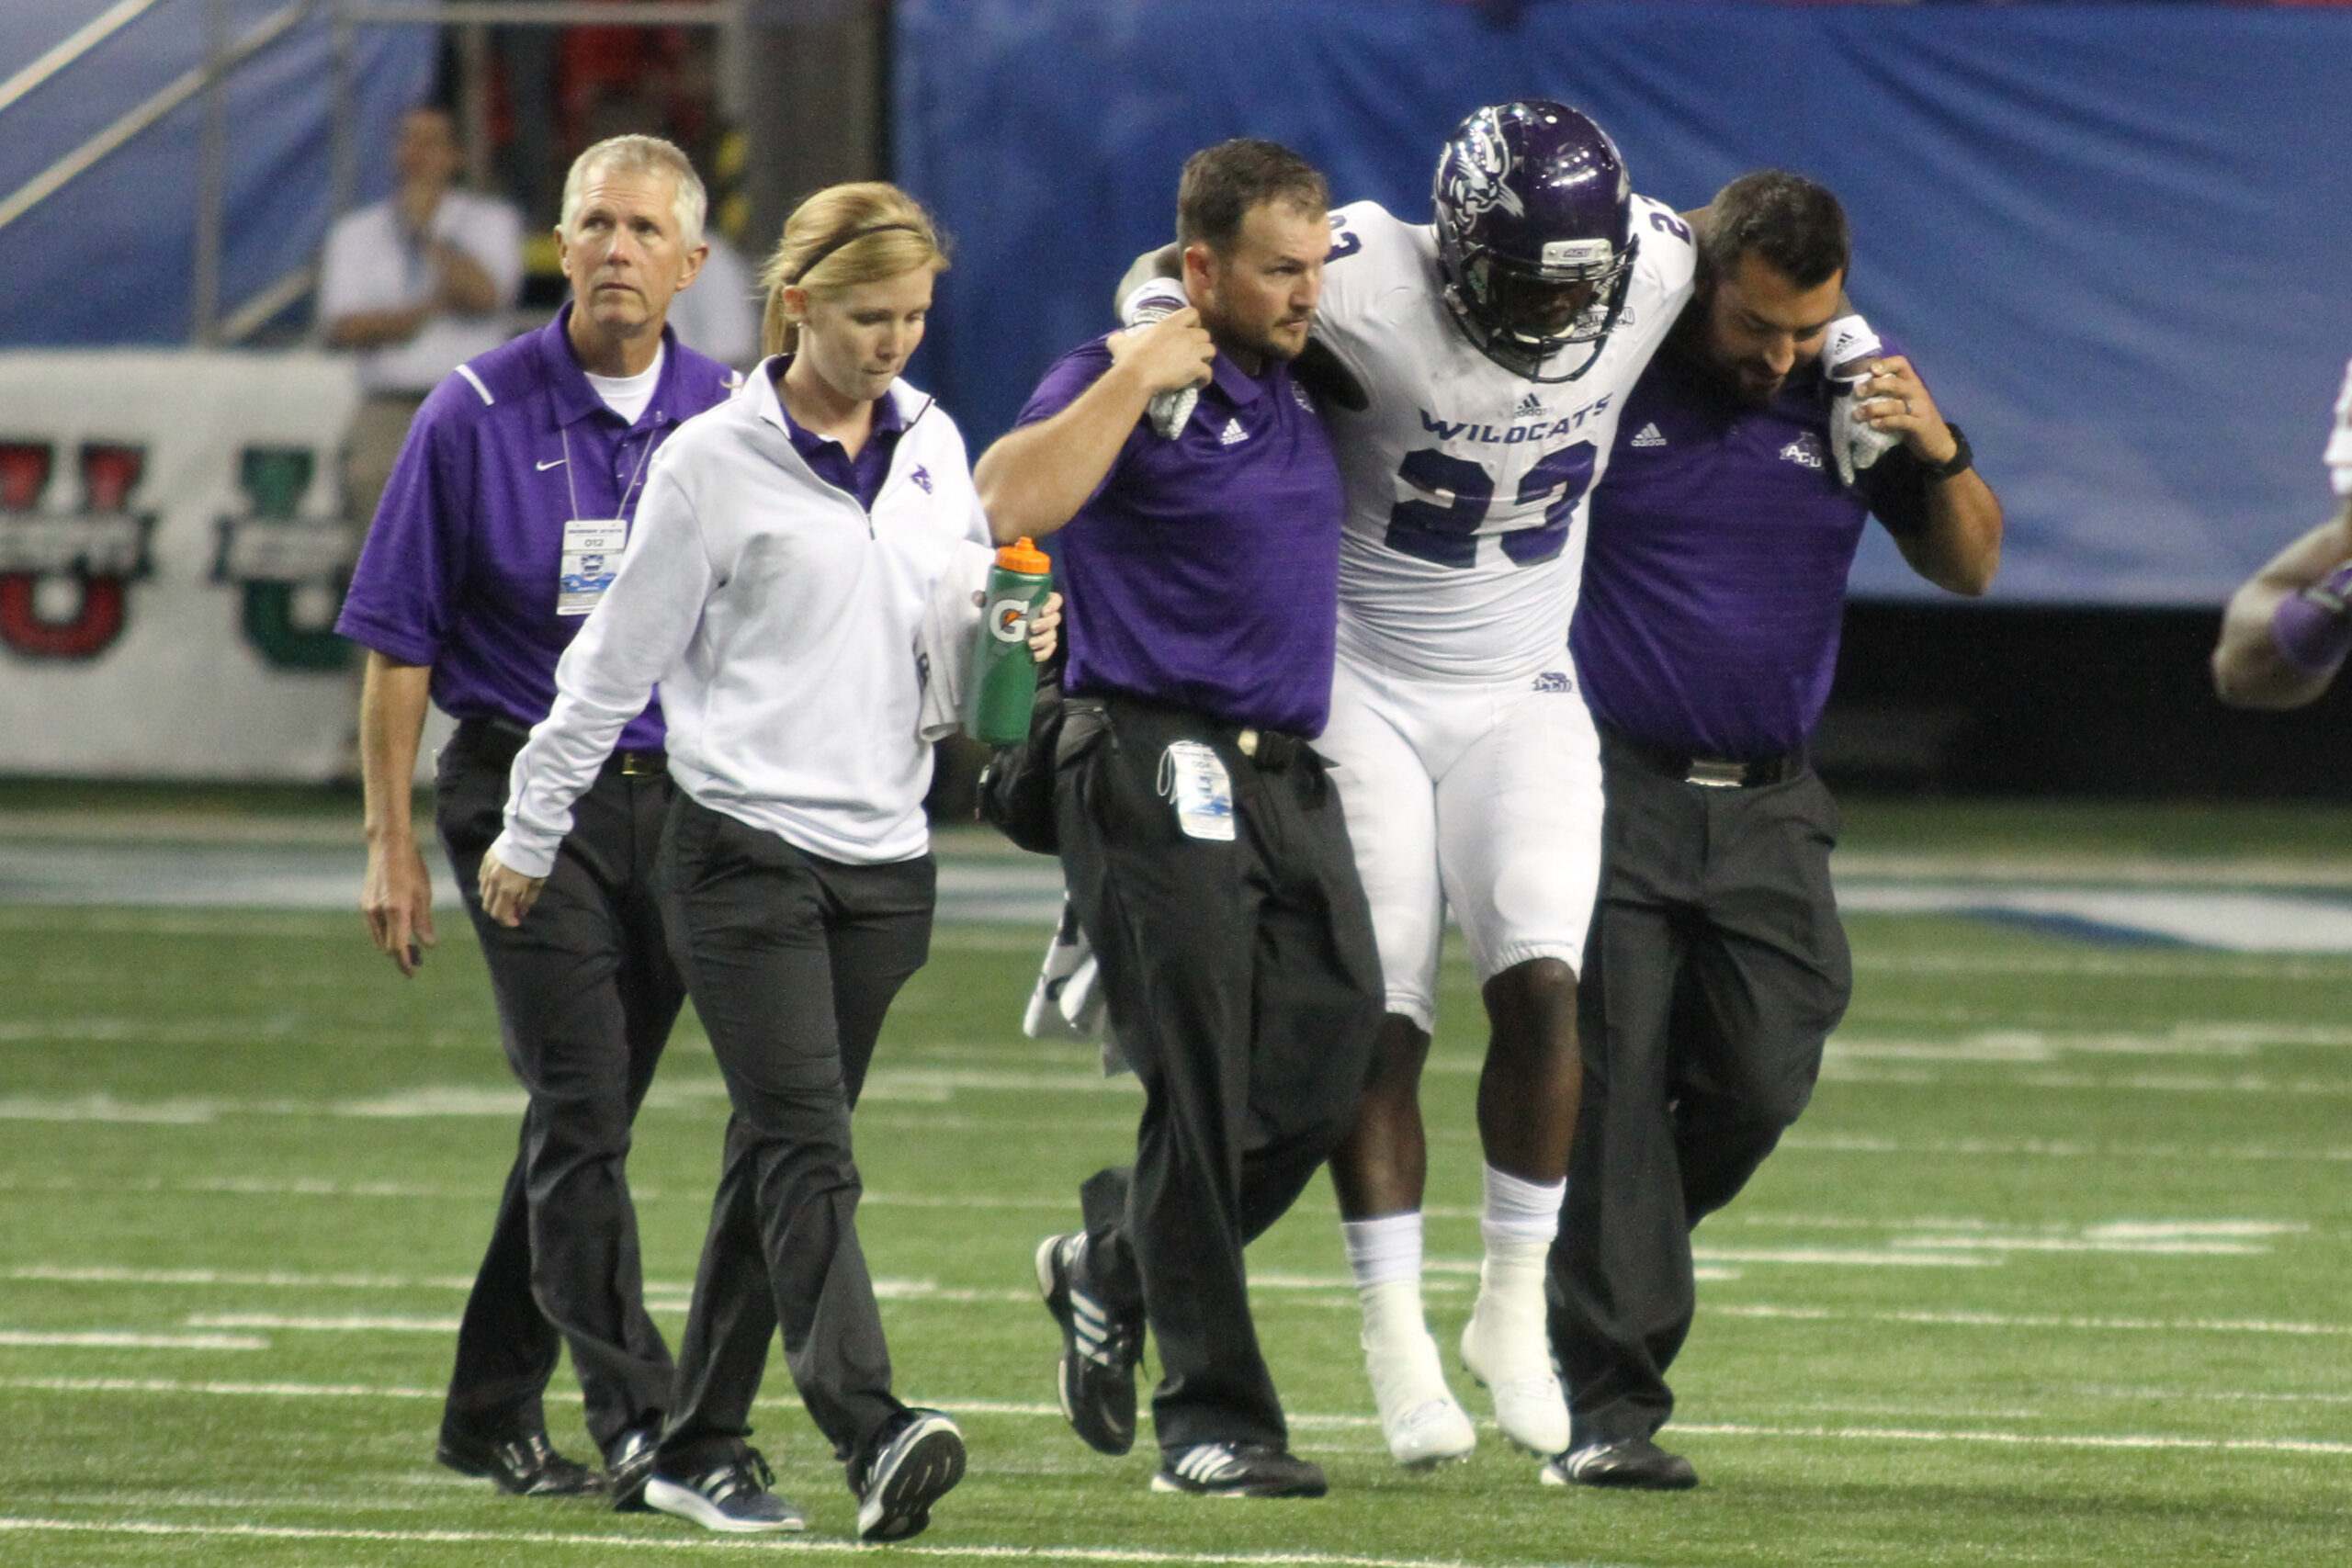 ACU's Master of Athletic Training program has been accredited by CAATE.